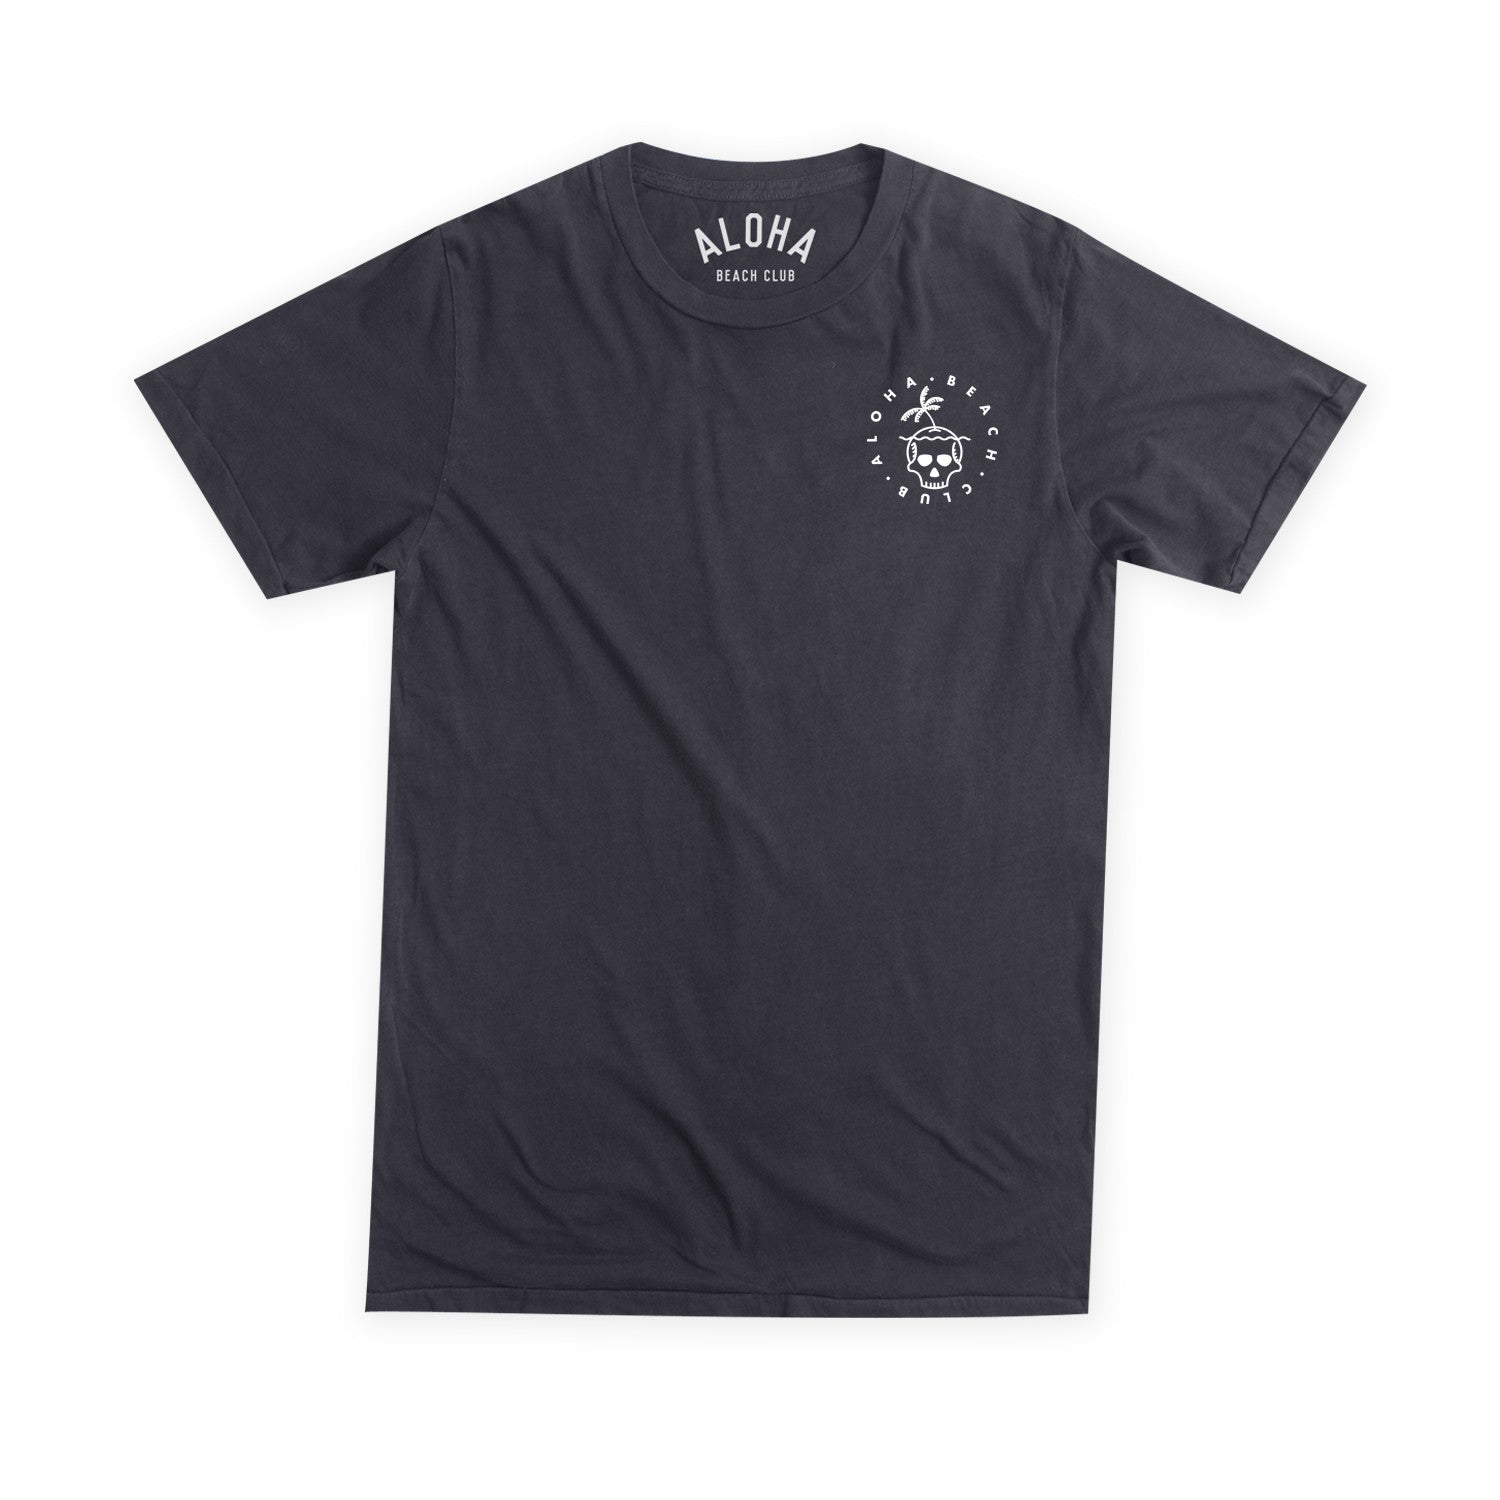 Aloha Beach Club - Sand Island Tee Black - Aloha Beach Club